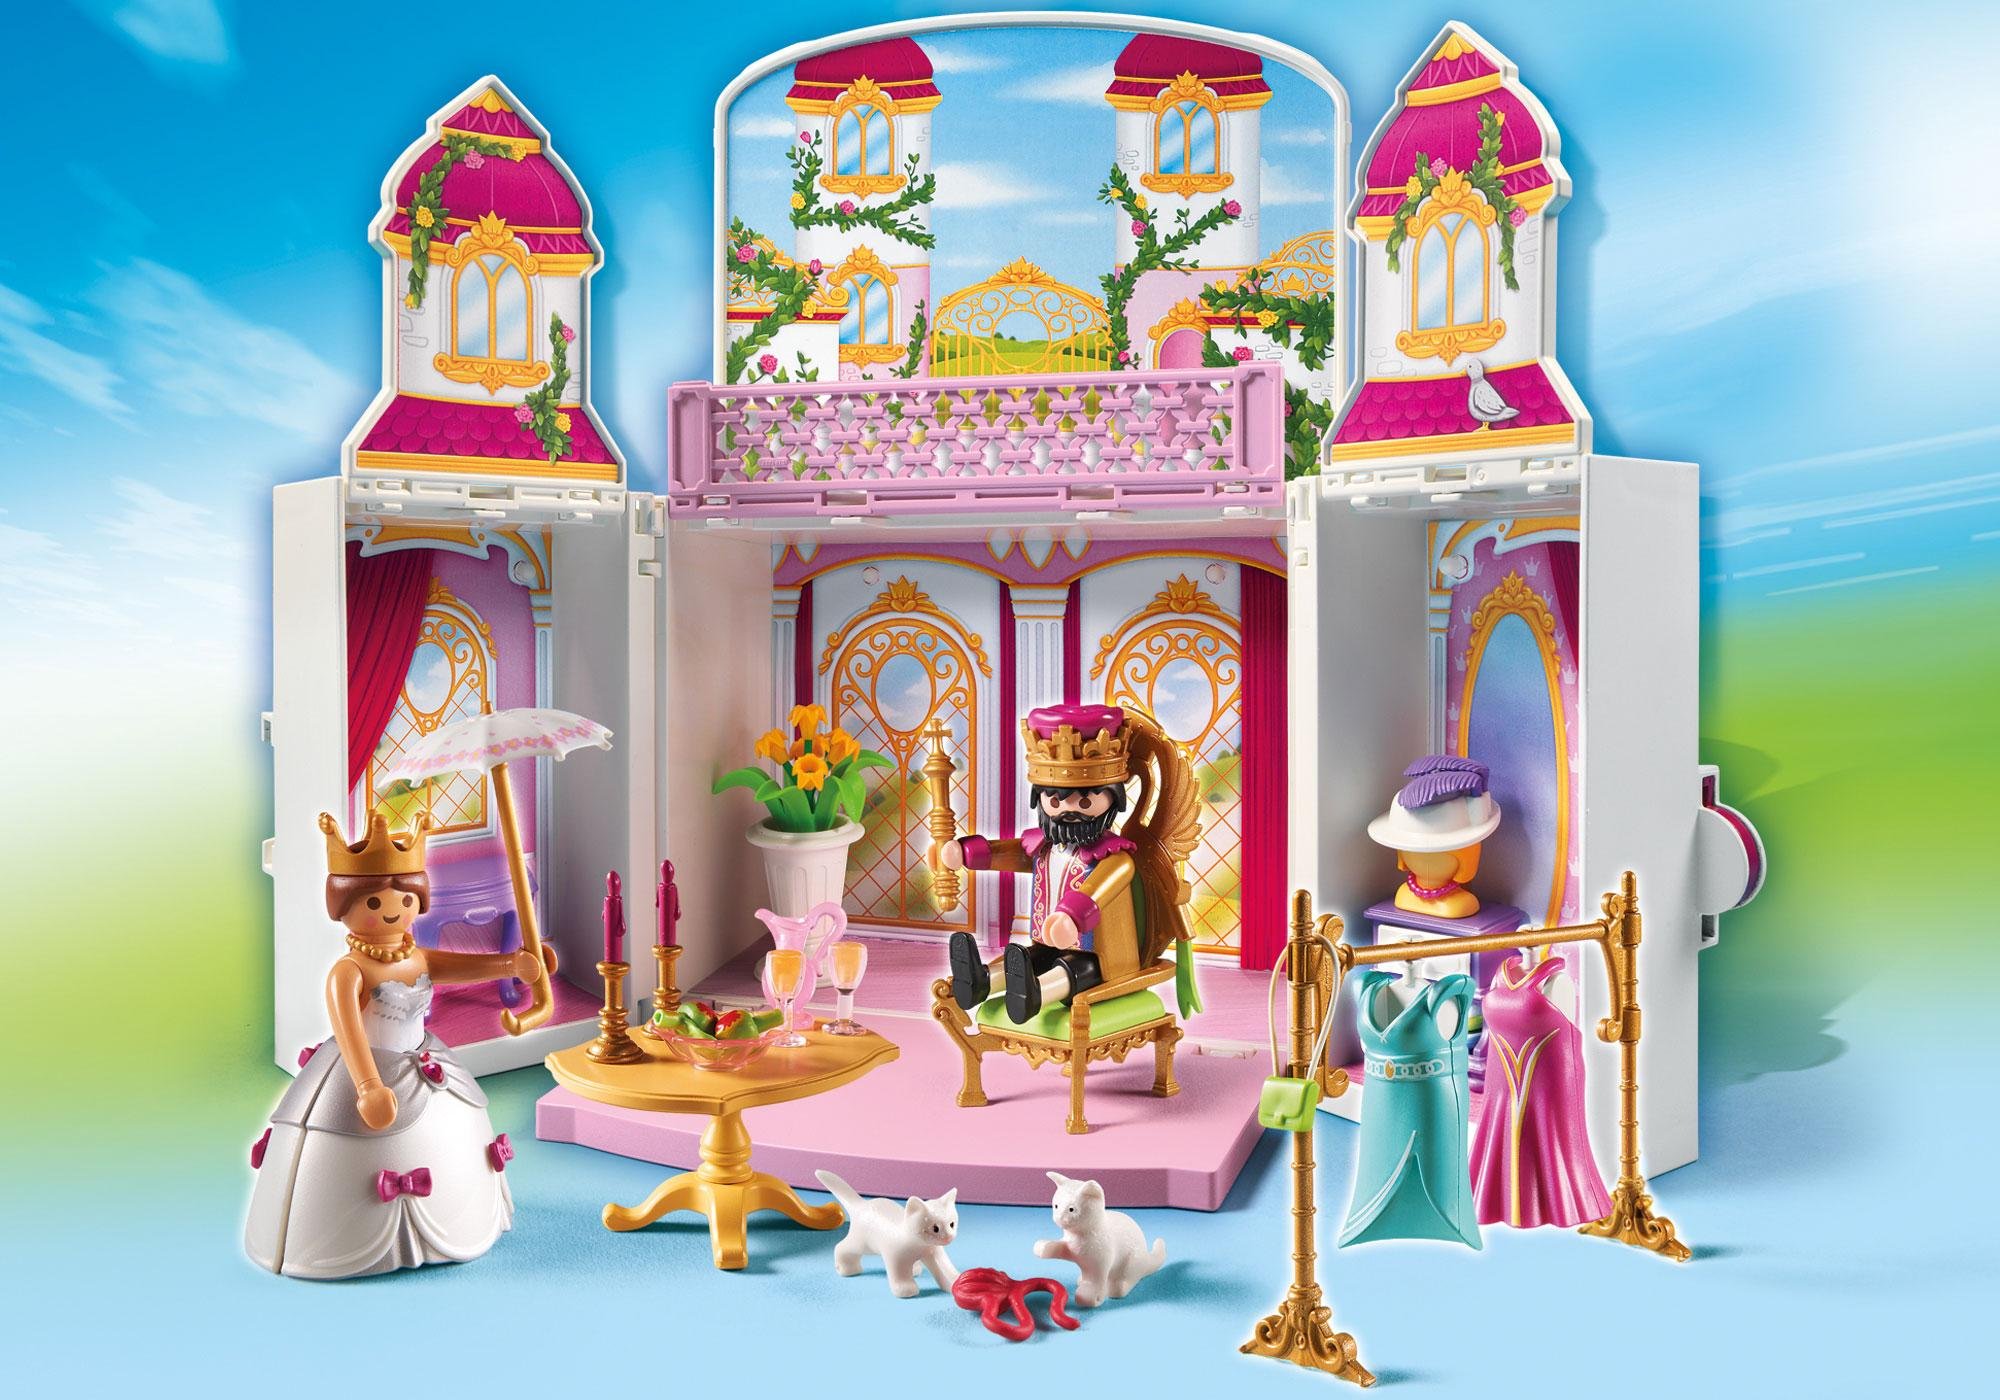 http://media.playmobil.com/i/playmobil/4898_product_detail/My Secret Royal Palace Play Box